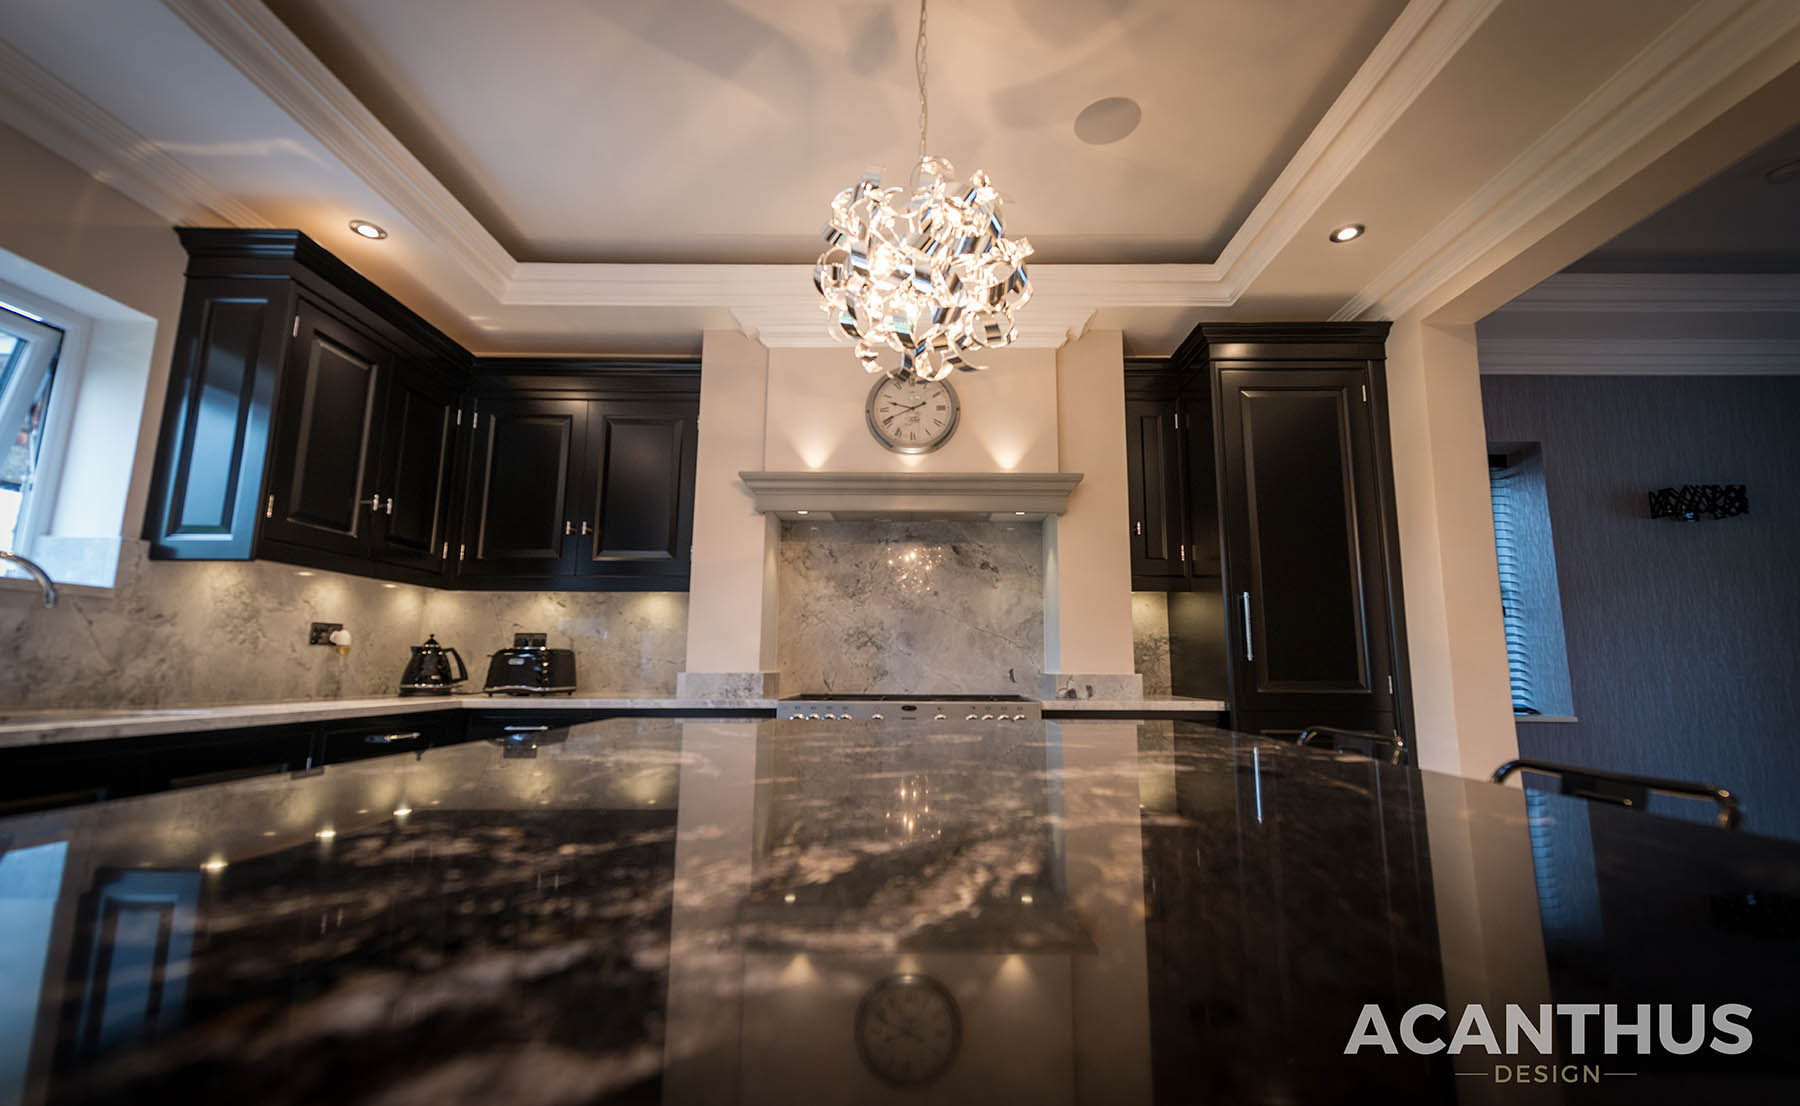 Acanthus Design kitchen Featuring Cosmic Black & Super White Granite Kitchen Worktops